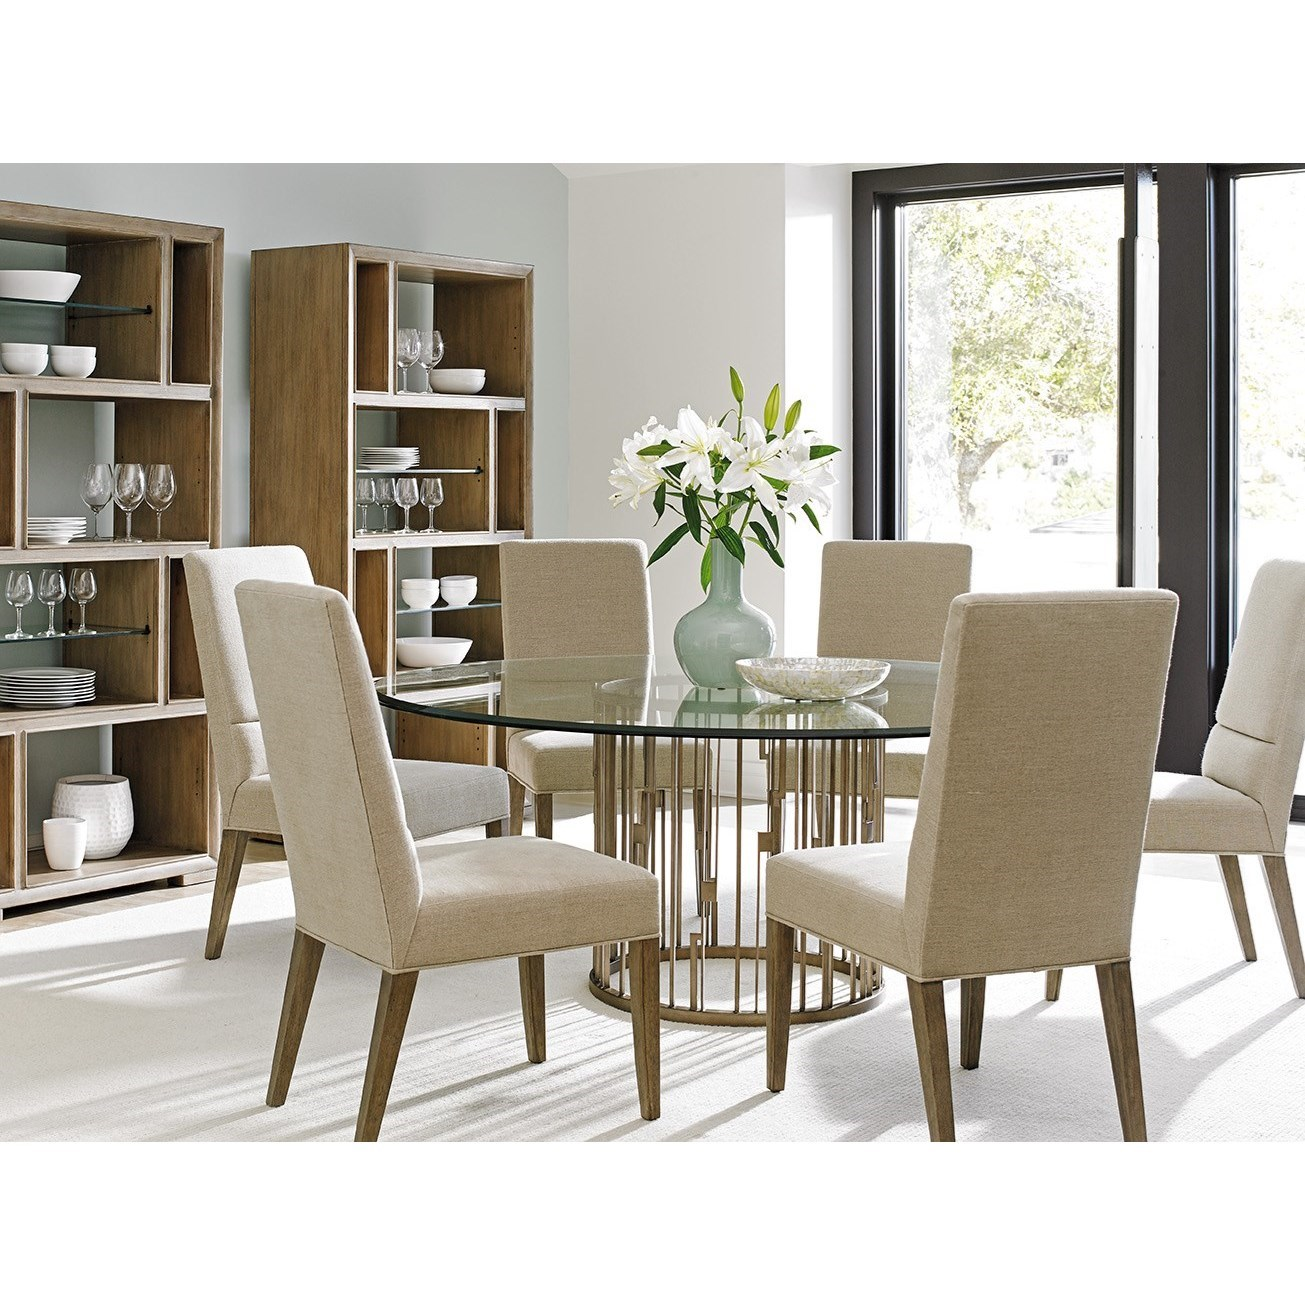 Shadow Play Dining Room Group by Lexington at Baer's Furniture